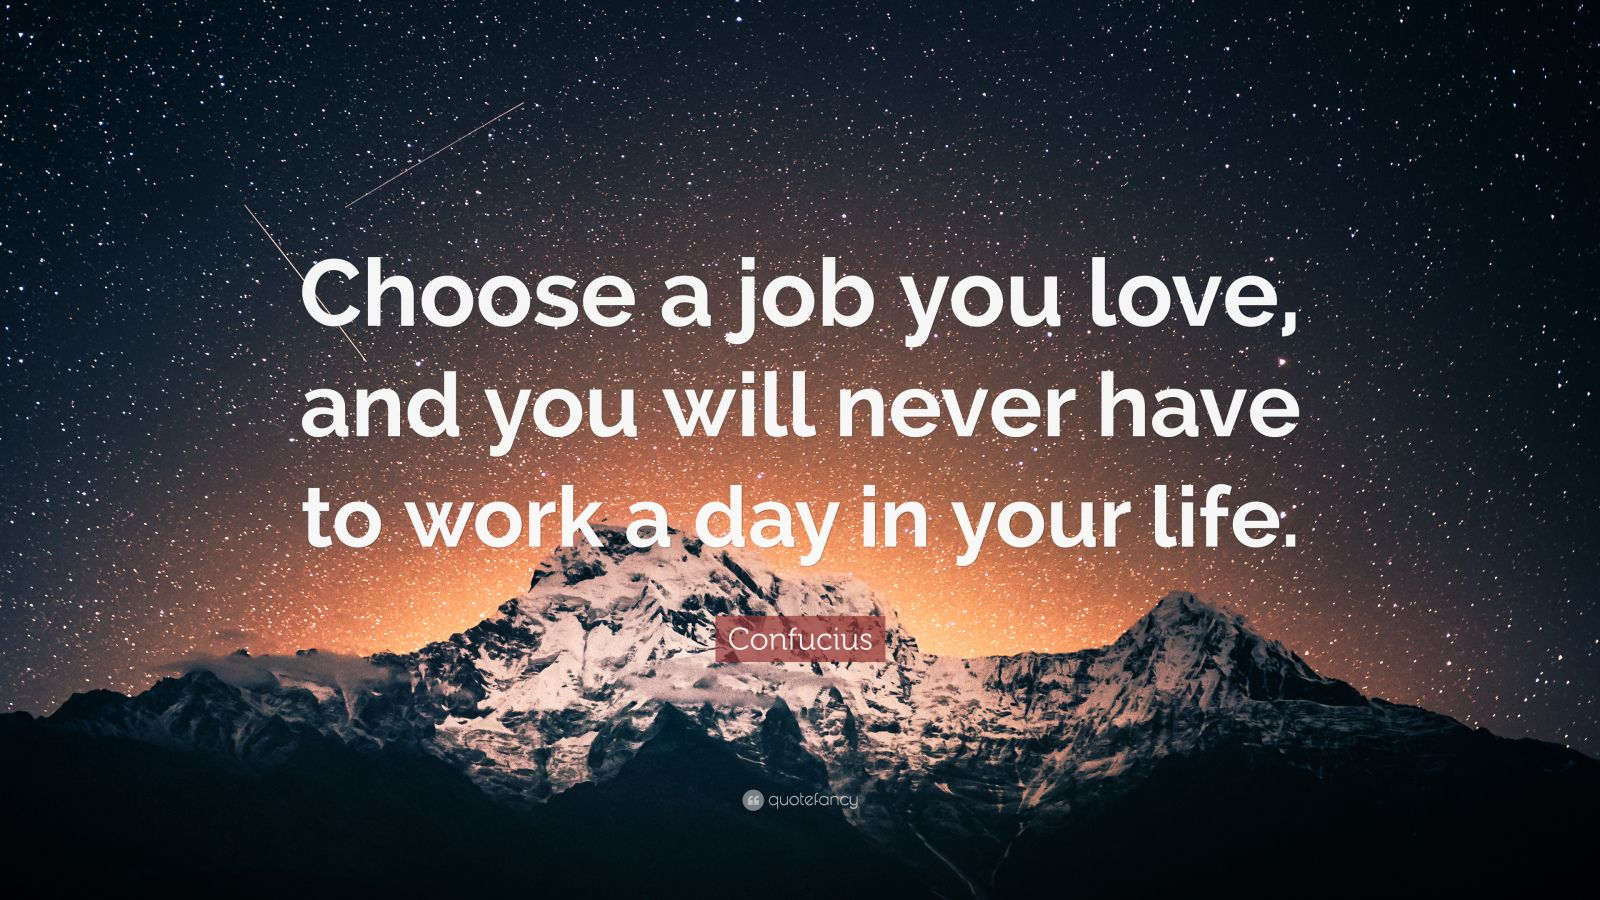 Choose a Job You Love, and You Will Never Have To Work a Day in Your Life